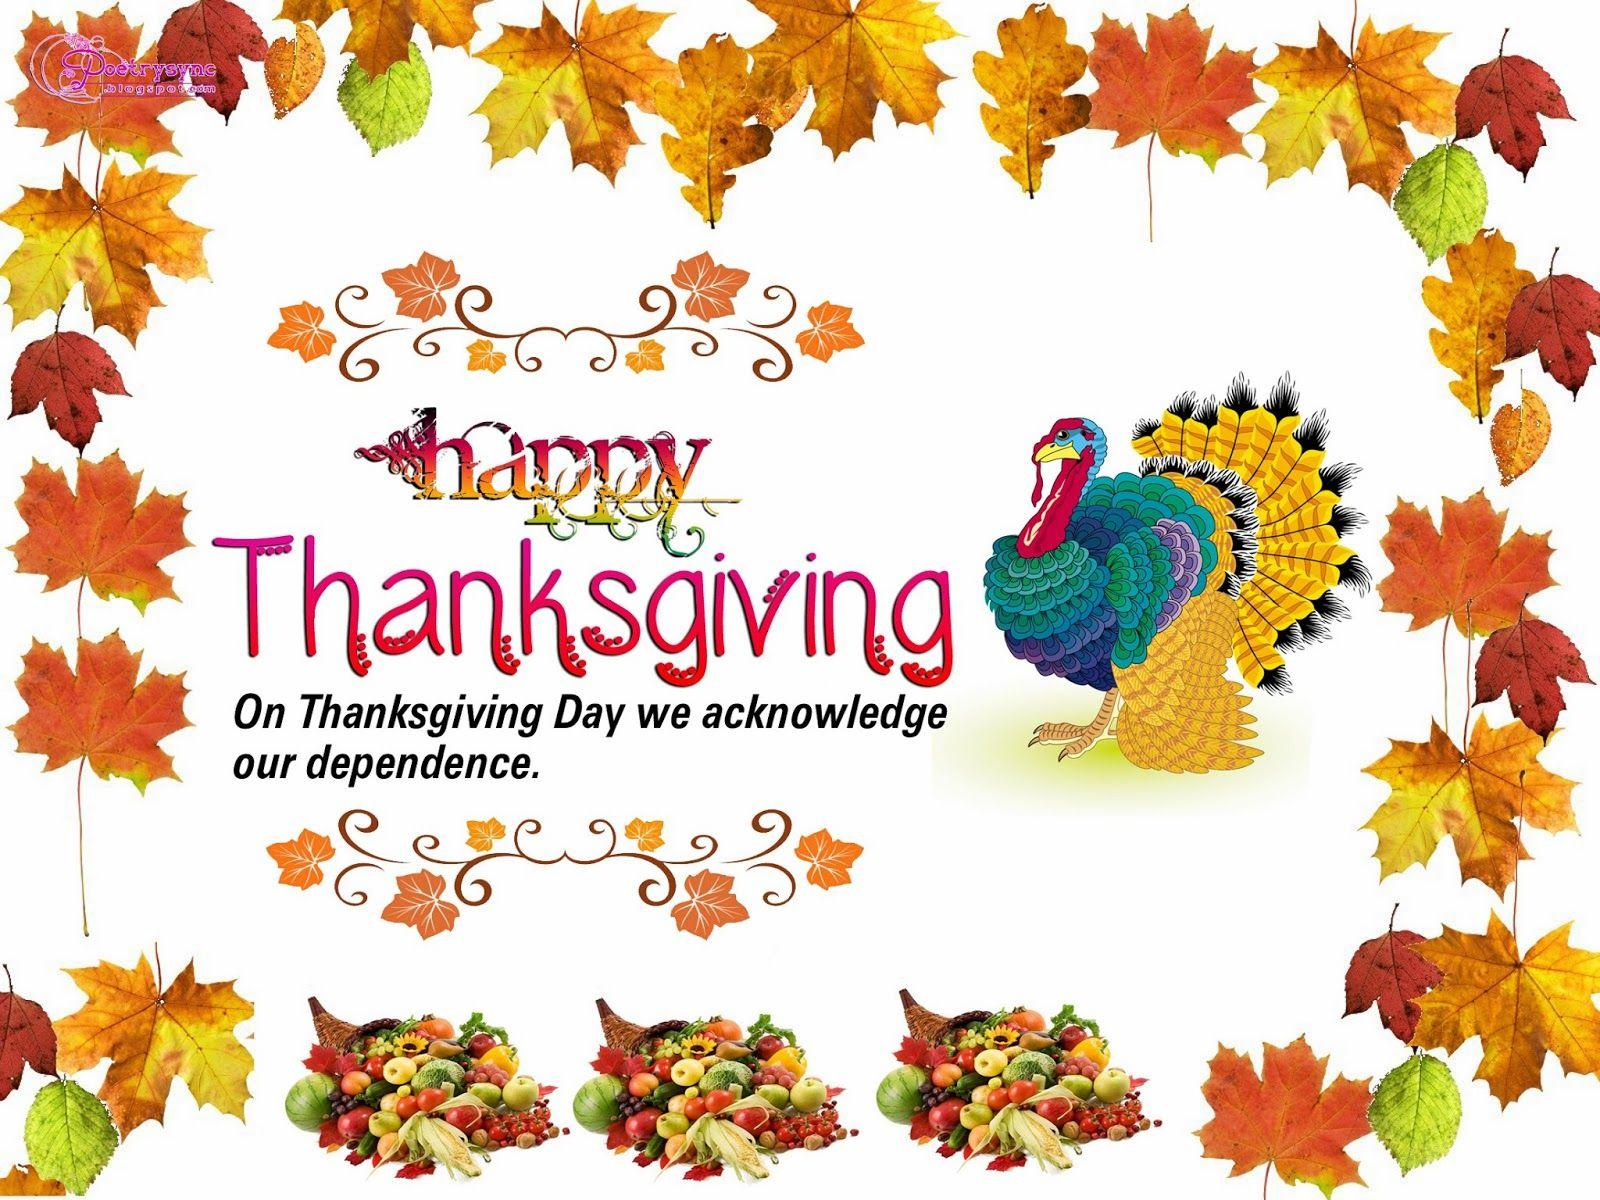 Thanksgiving Day 2017 Image, Wallpapers, Pictures, Photos, Pics